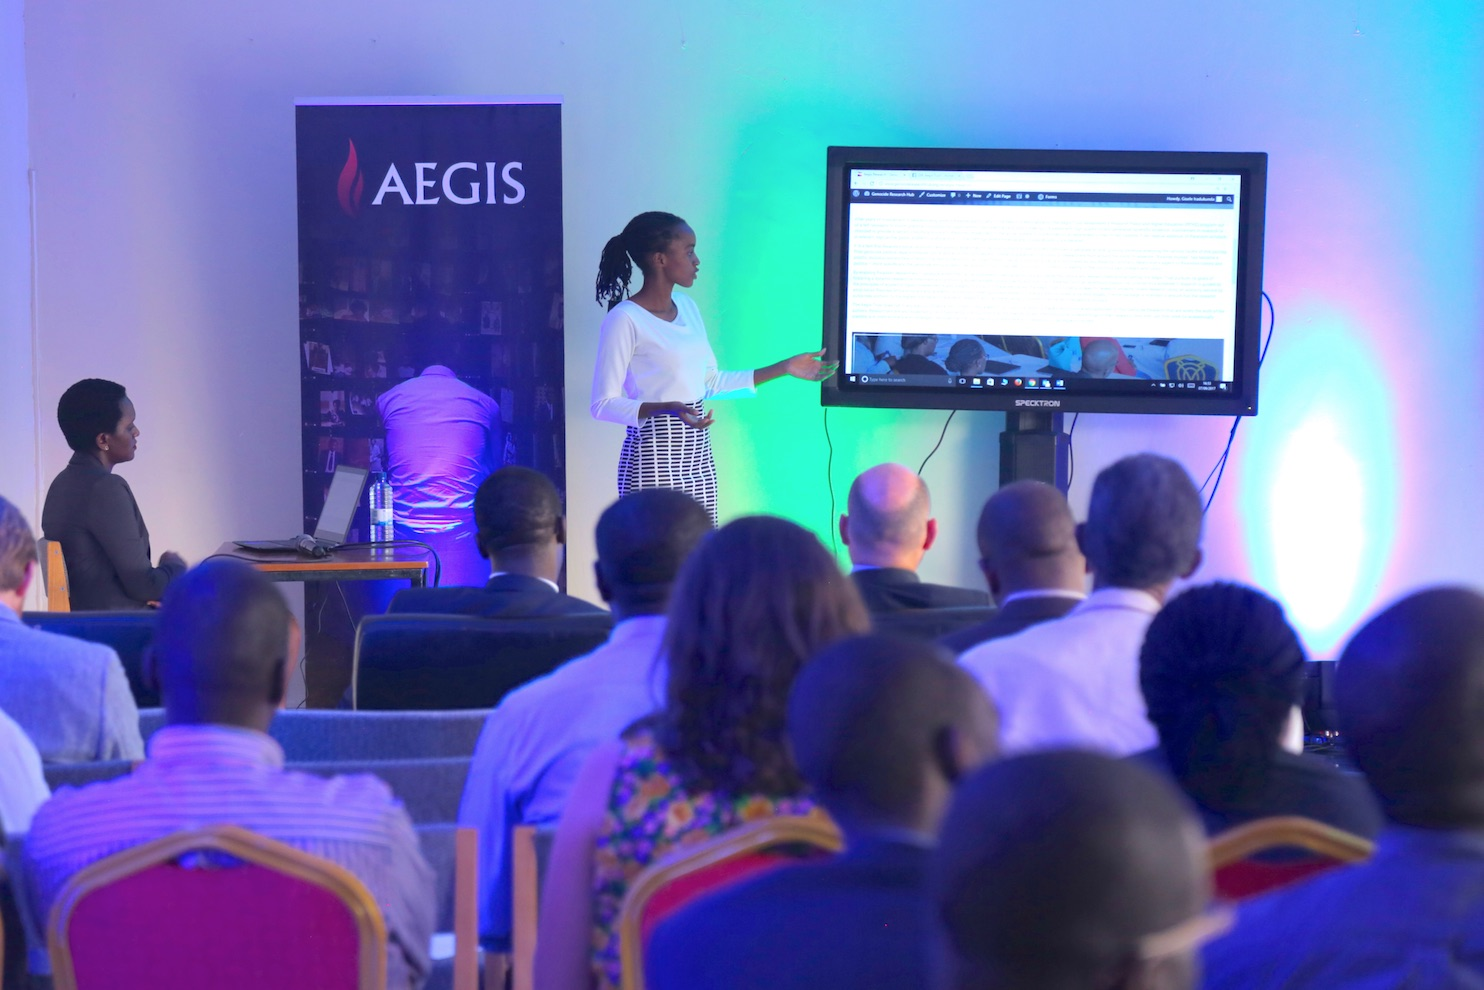 Aegis launches Genocide Research Hub